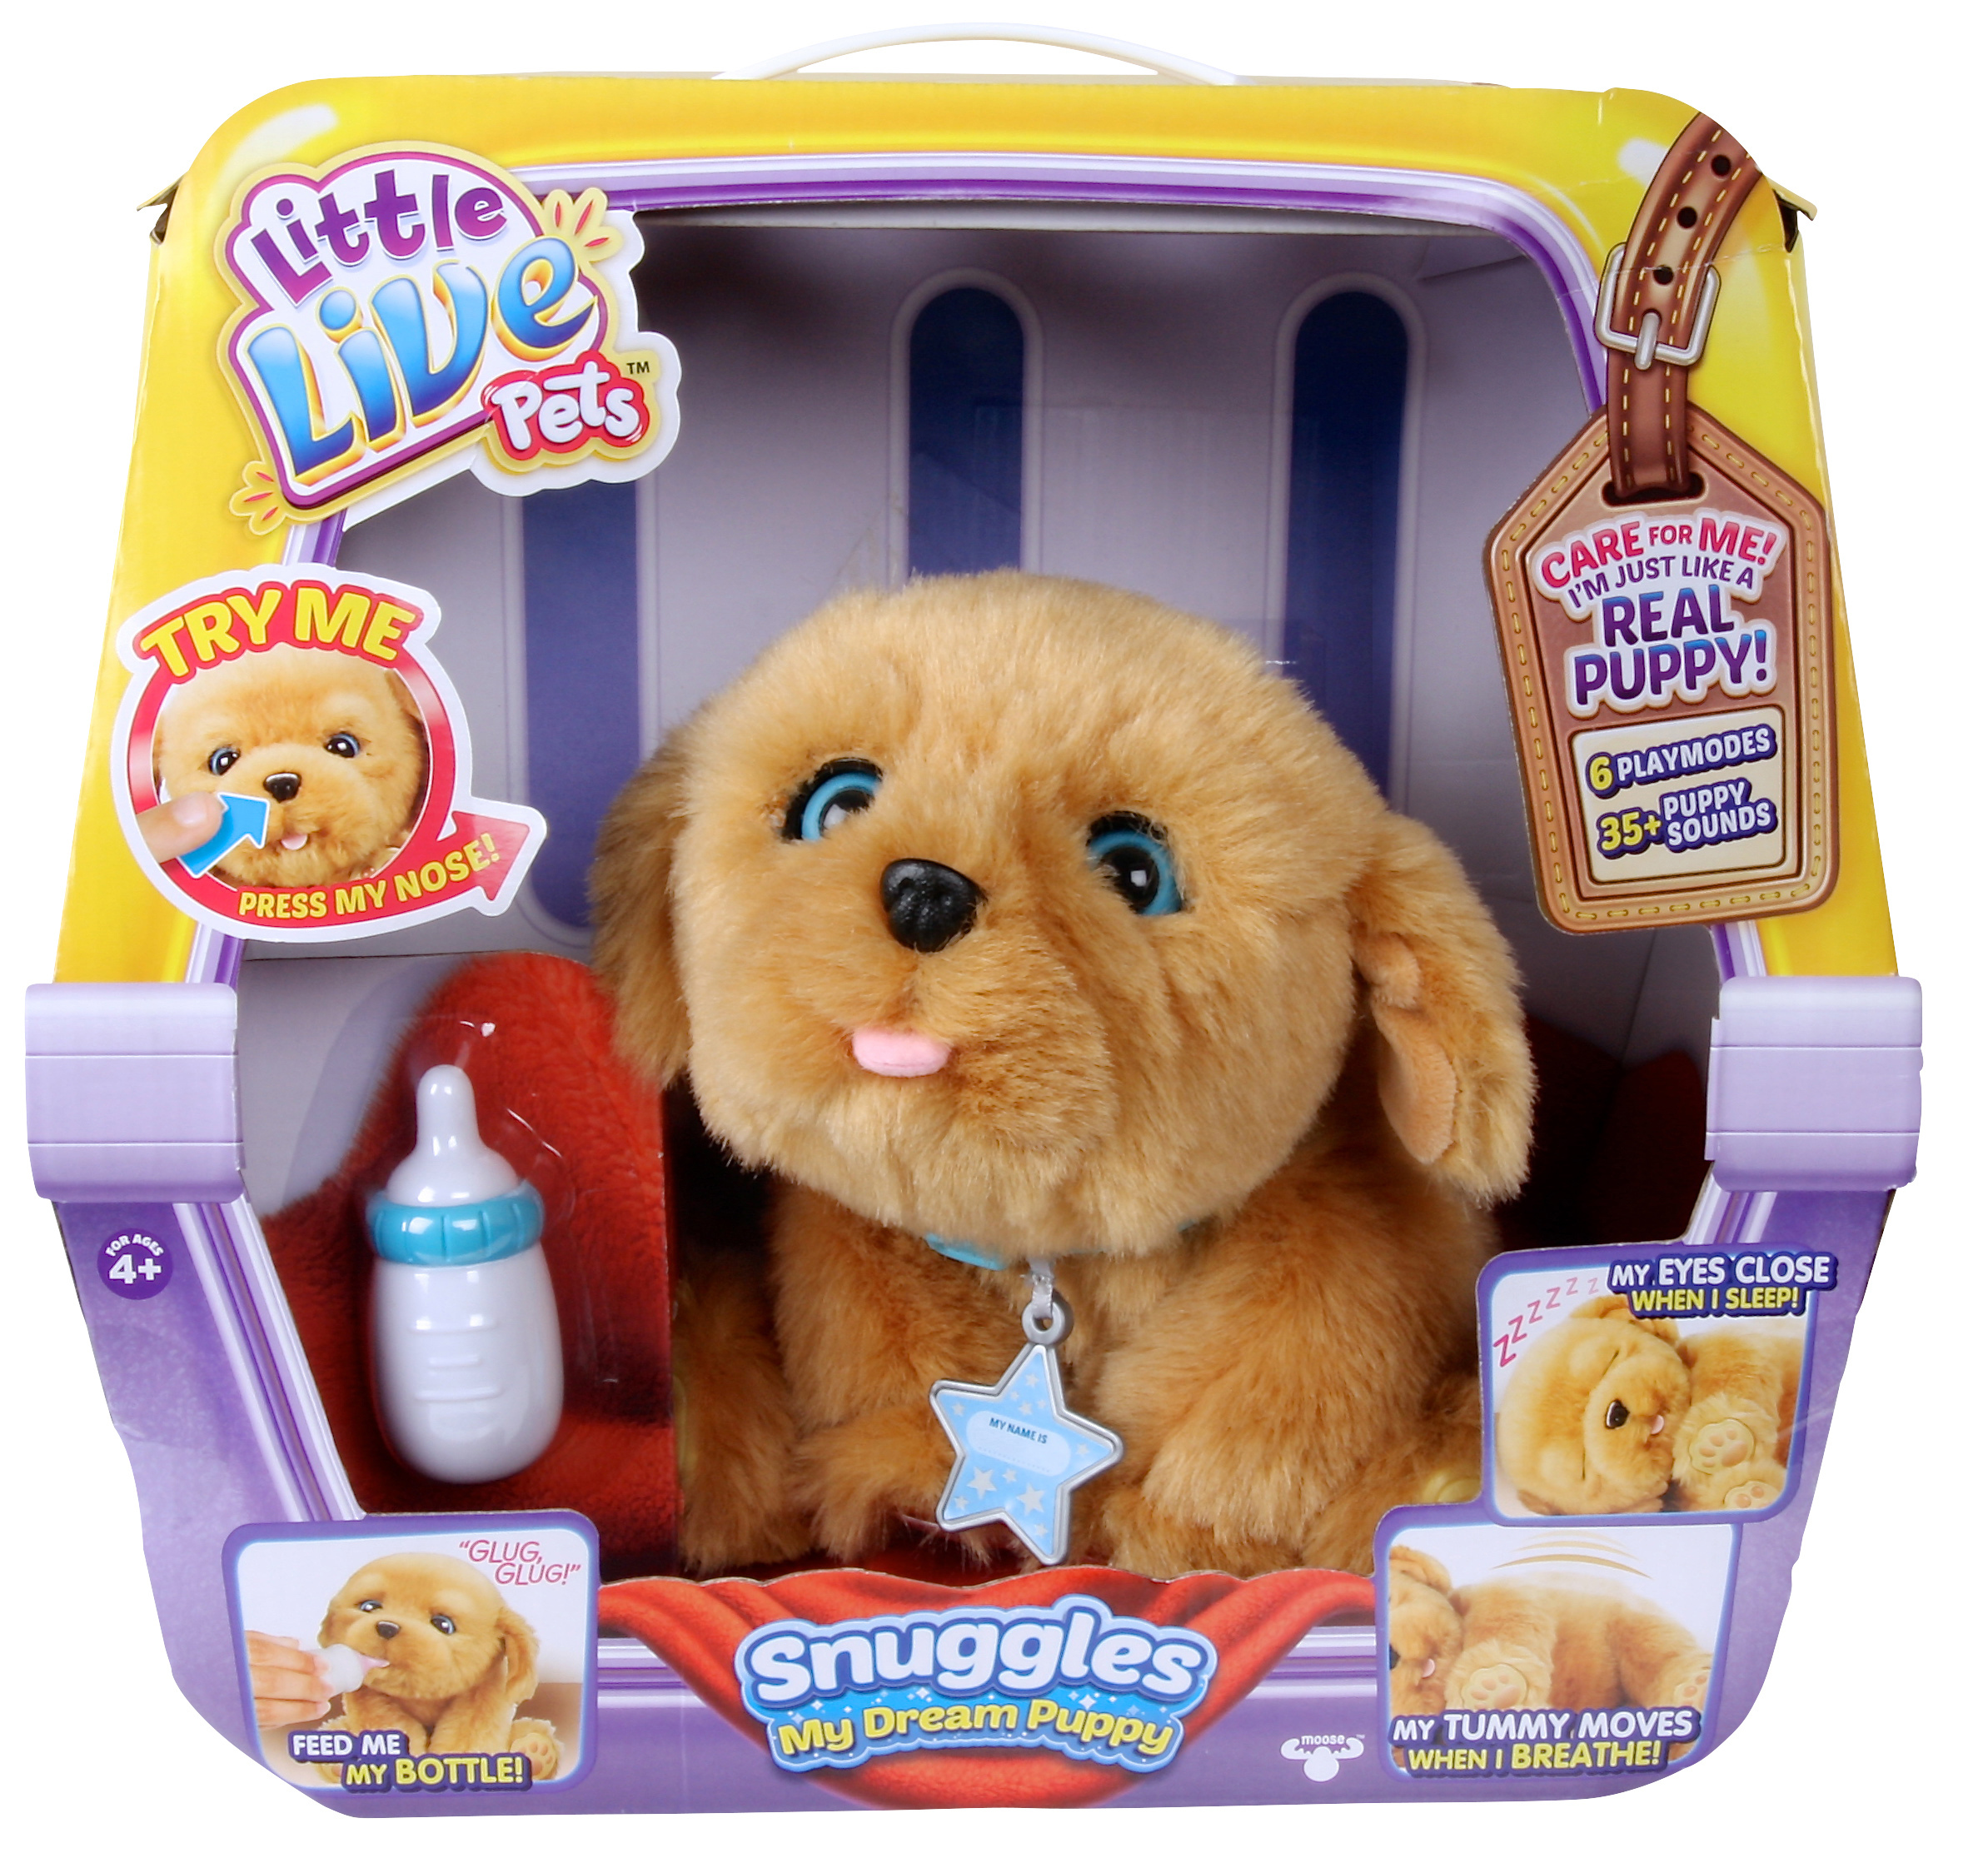 dbda4911dc25 Little Live Pets Snuggles My Dream Puppy - Toy Review - Everywhere